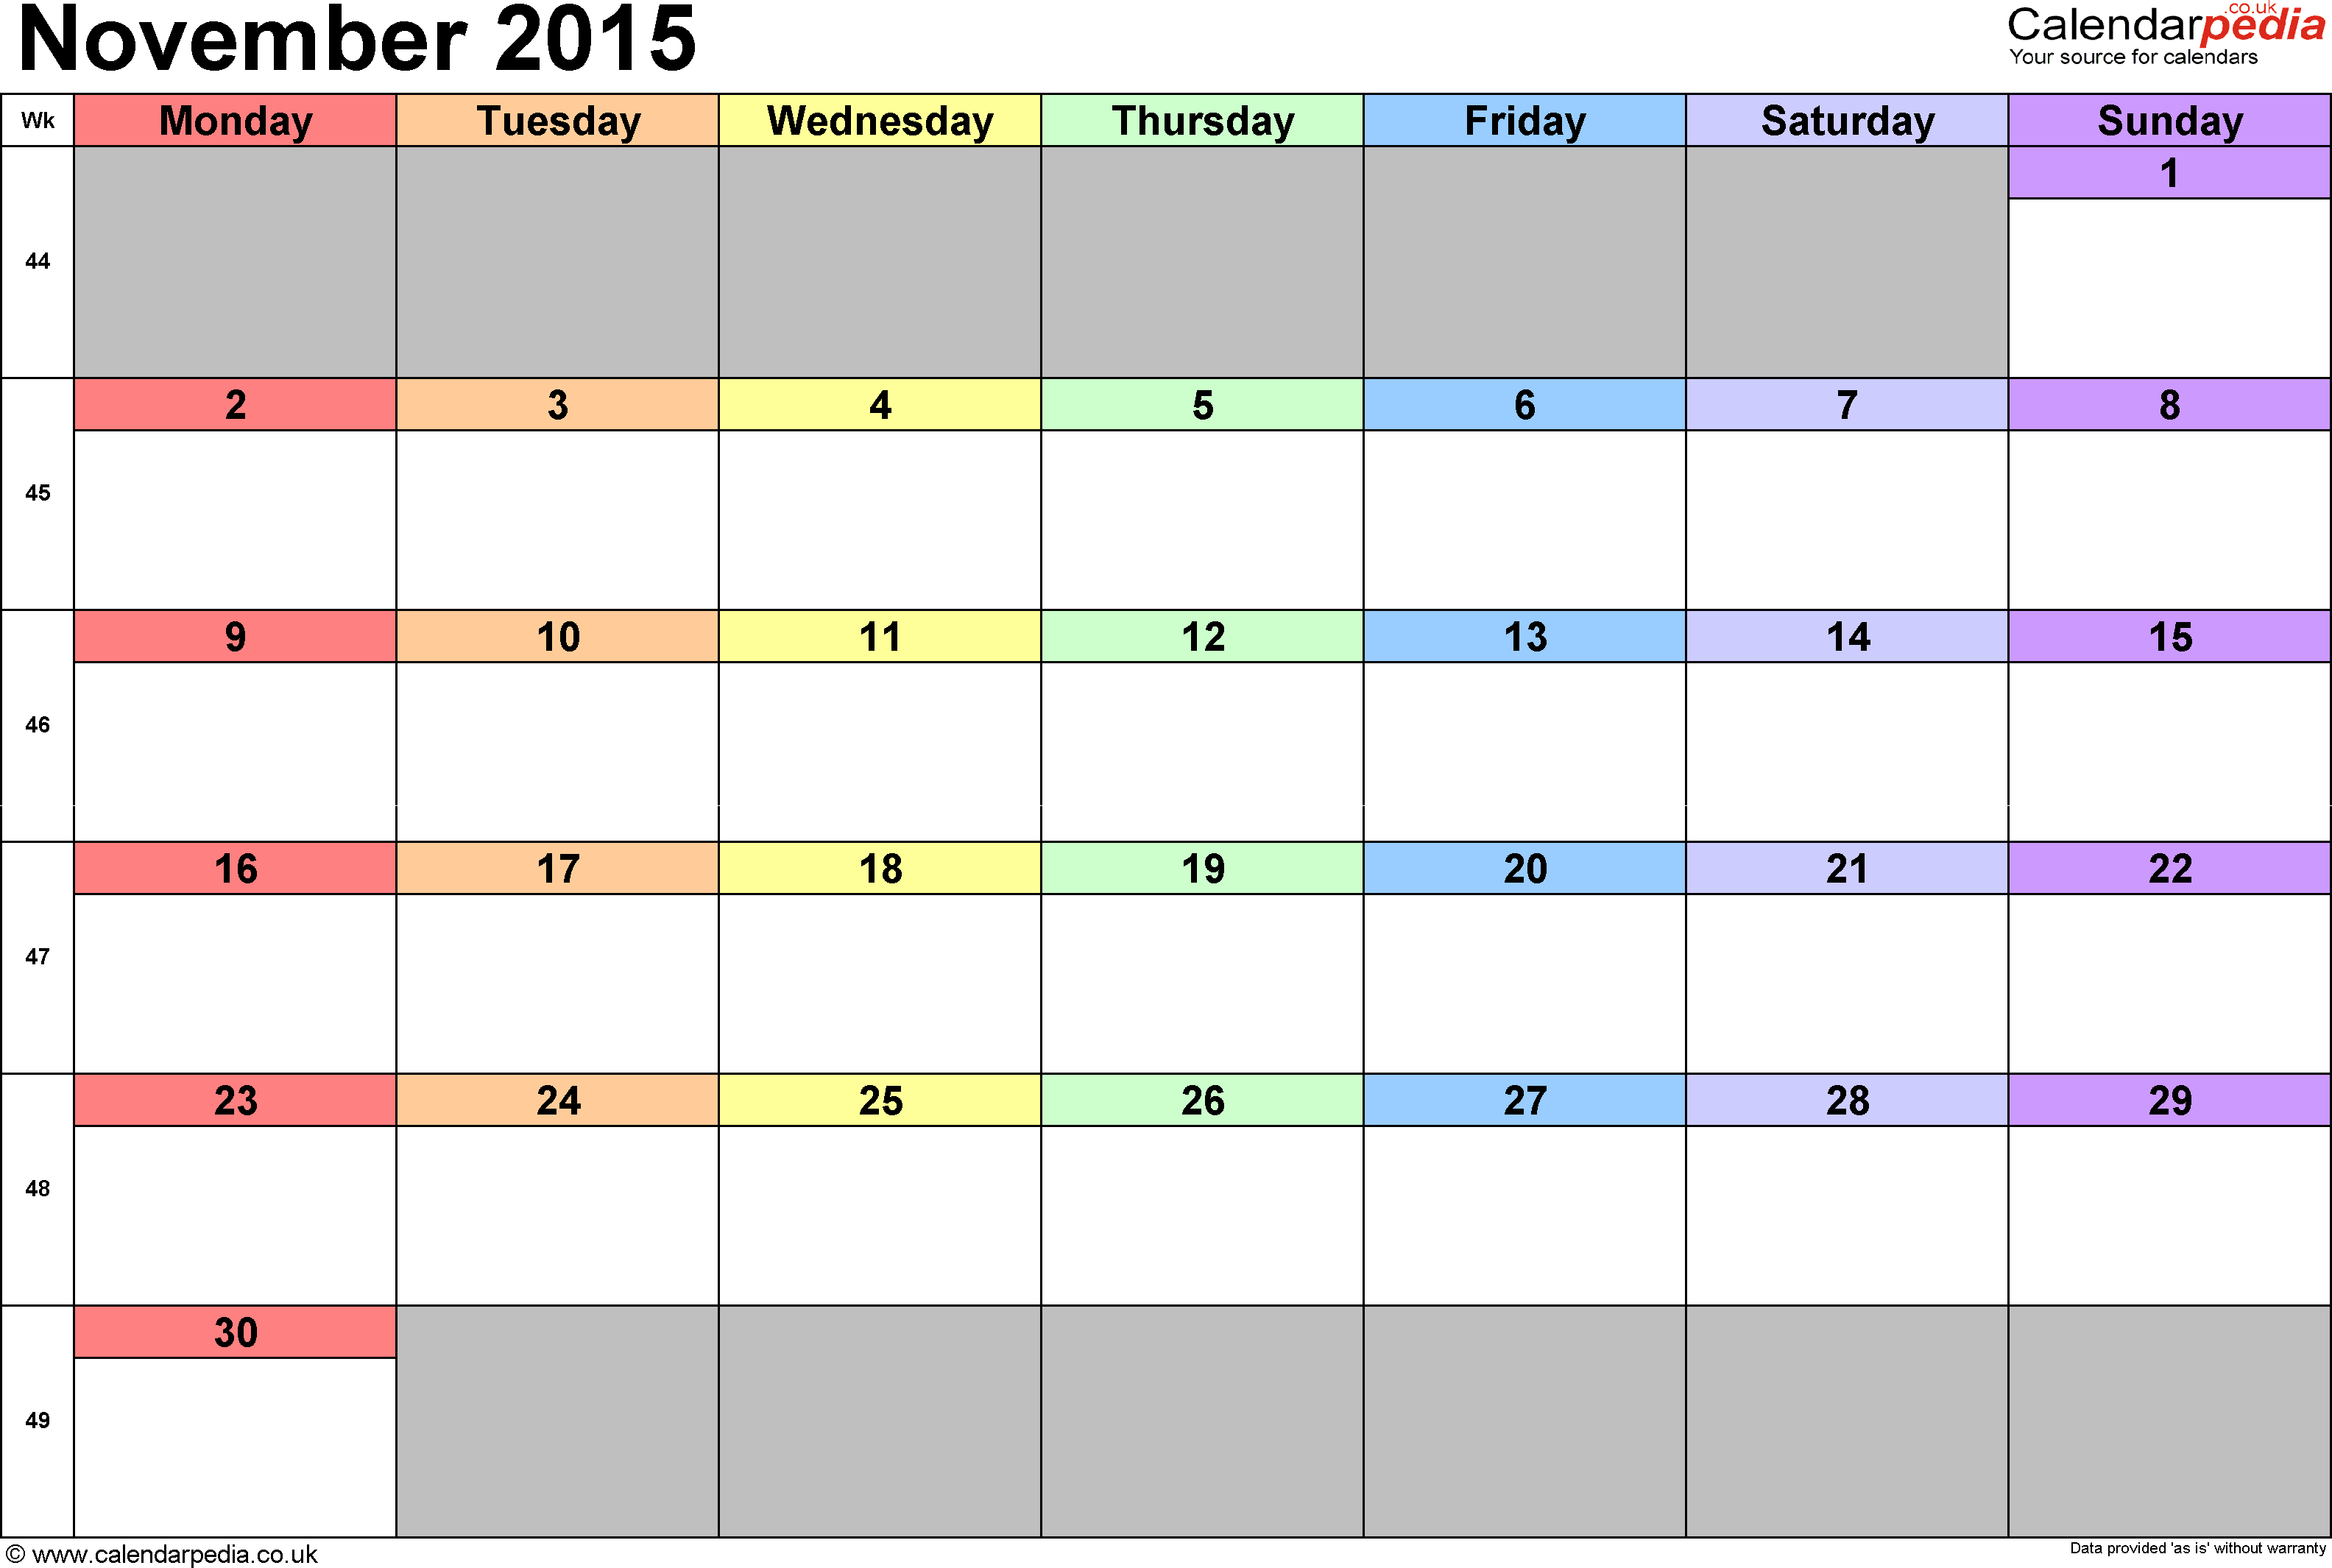 Calendar November 2015 UK, Bank Holidays, Excel/PDF/Word Templates